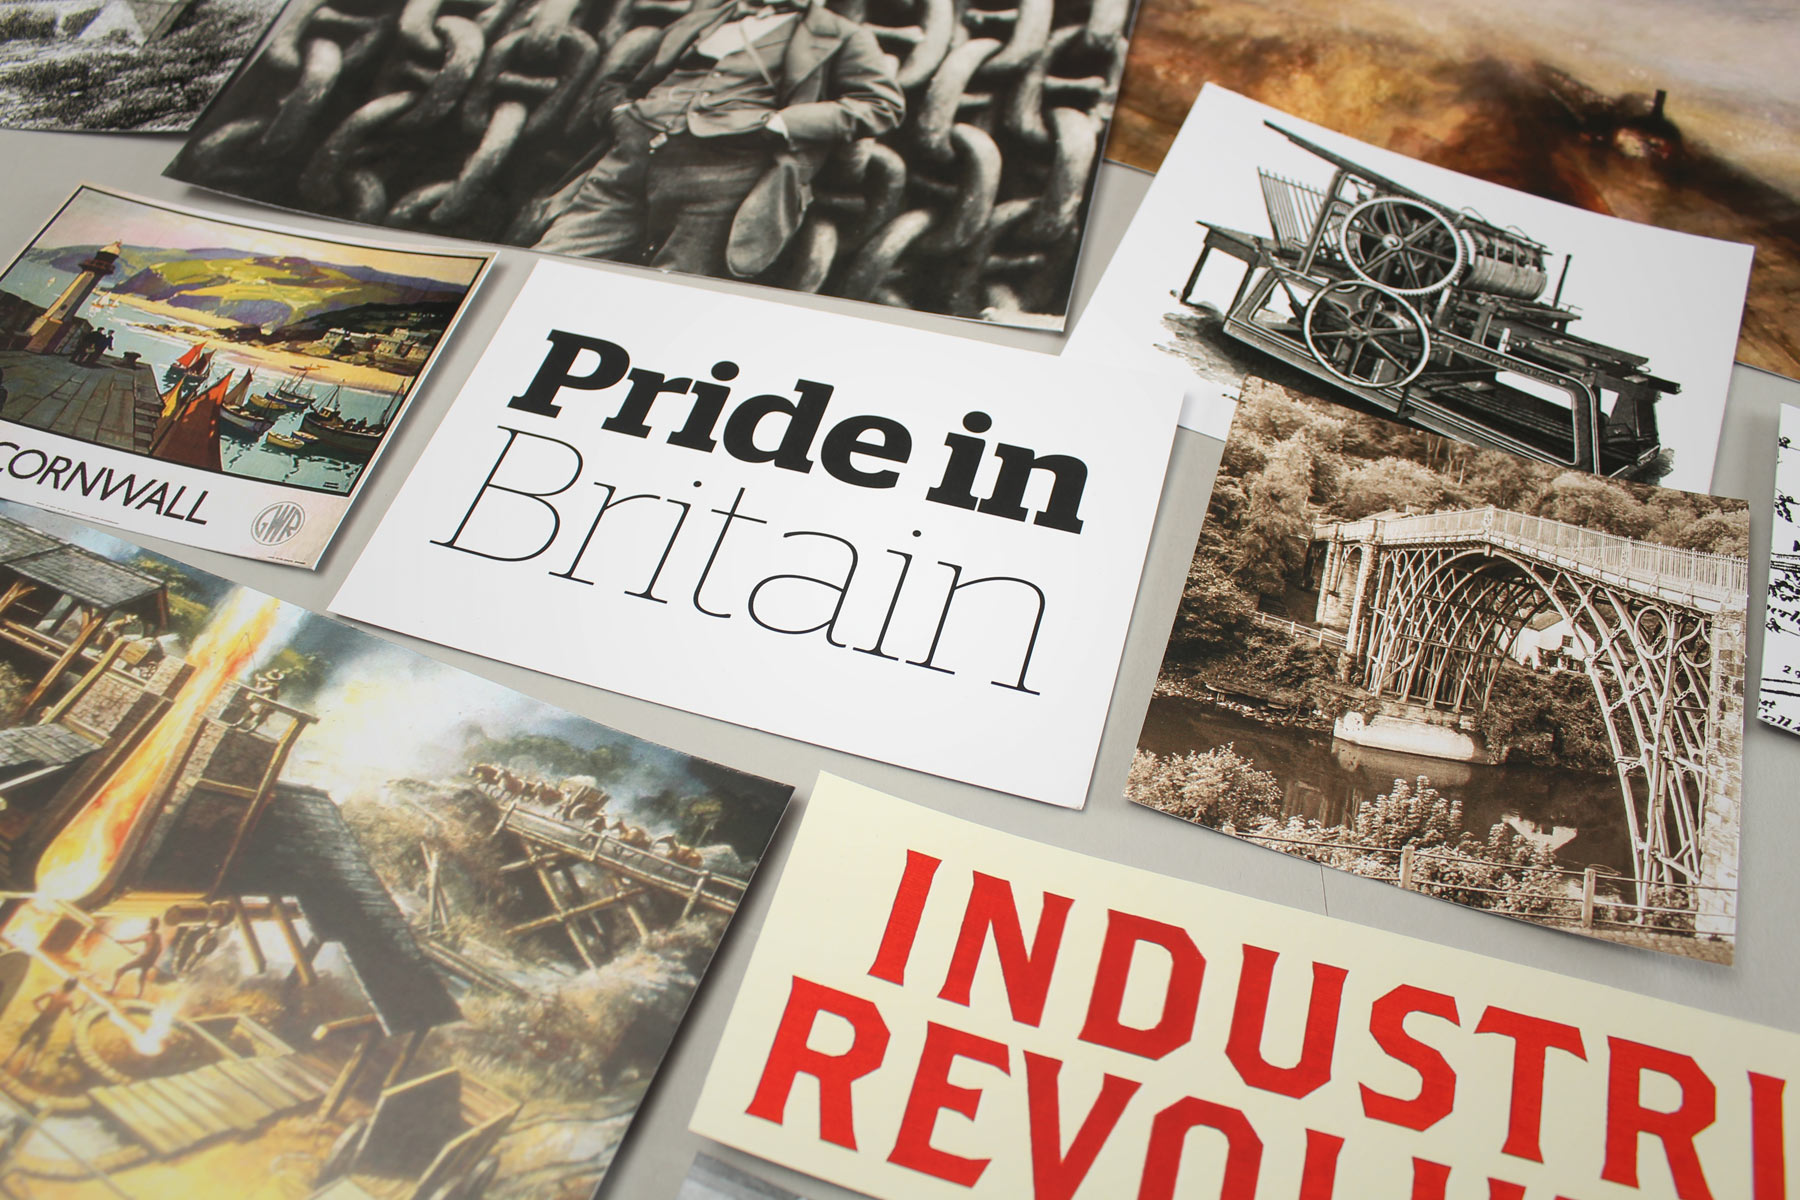 Since the Olympics in 2012, a sense of national pride has thankfully been restored. Our research suggested this should be harnessed to communicate the abundance of an untapped resource, married with Britain's engineering heritage. We decided to look back to project into the future.